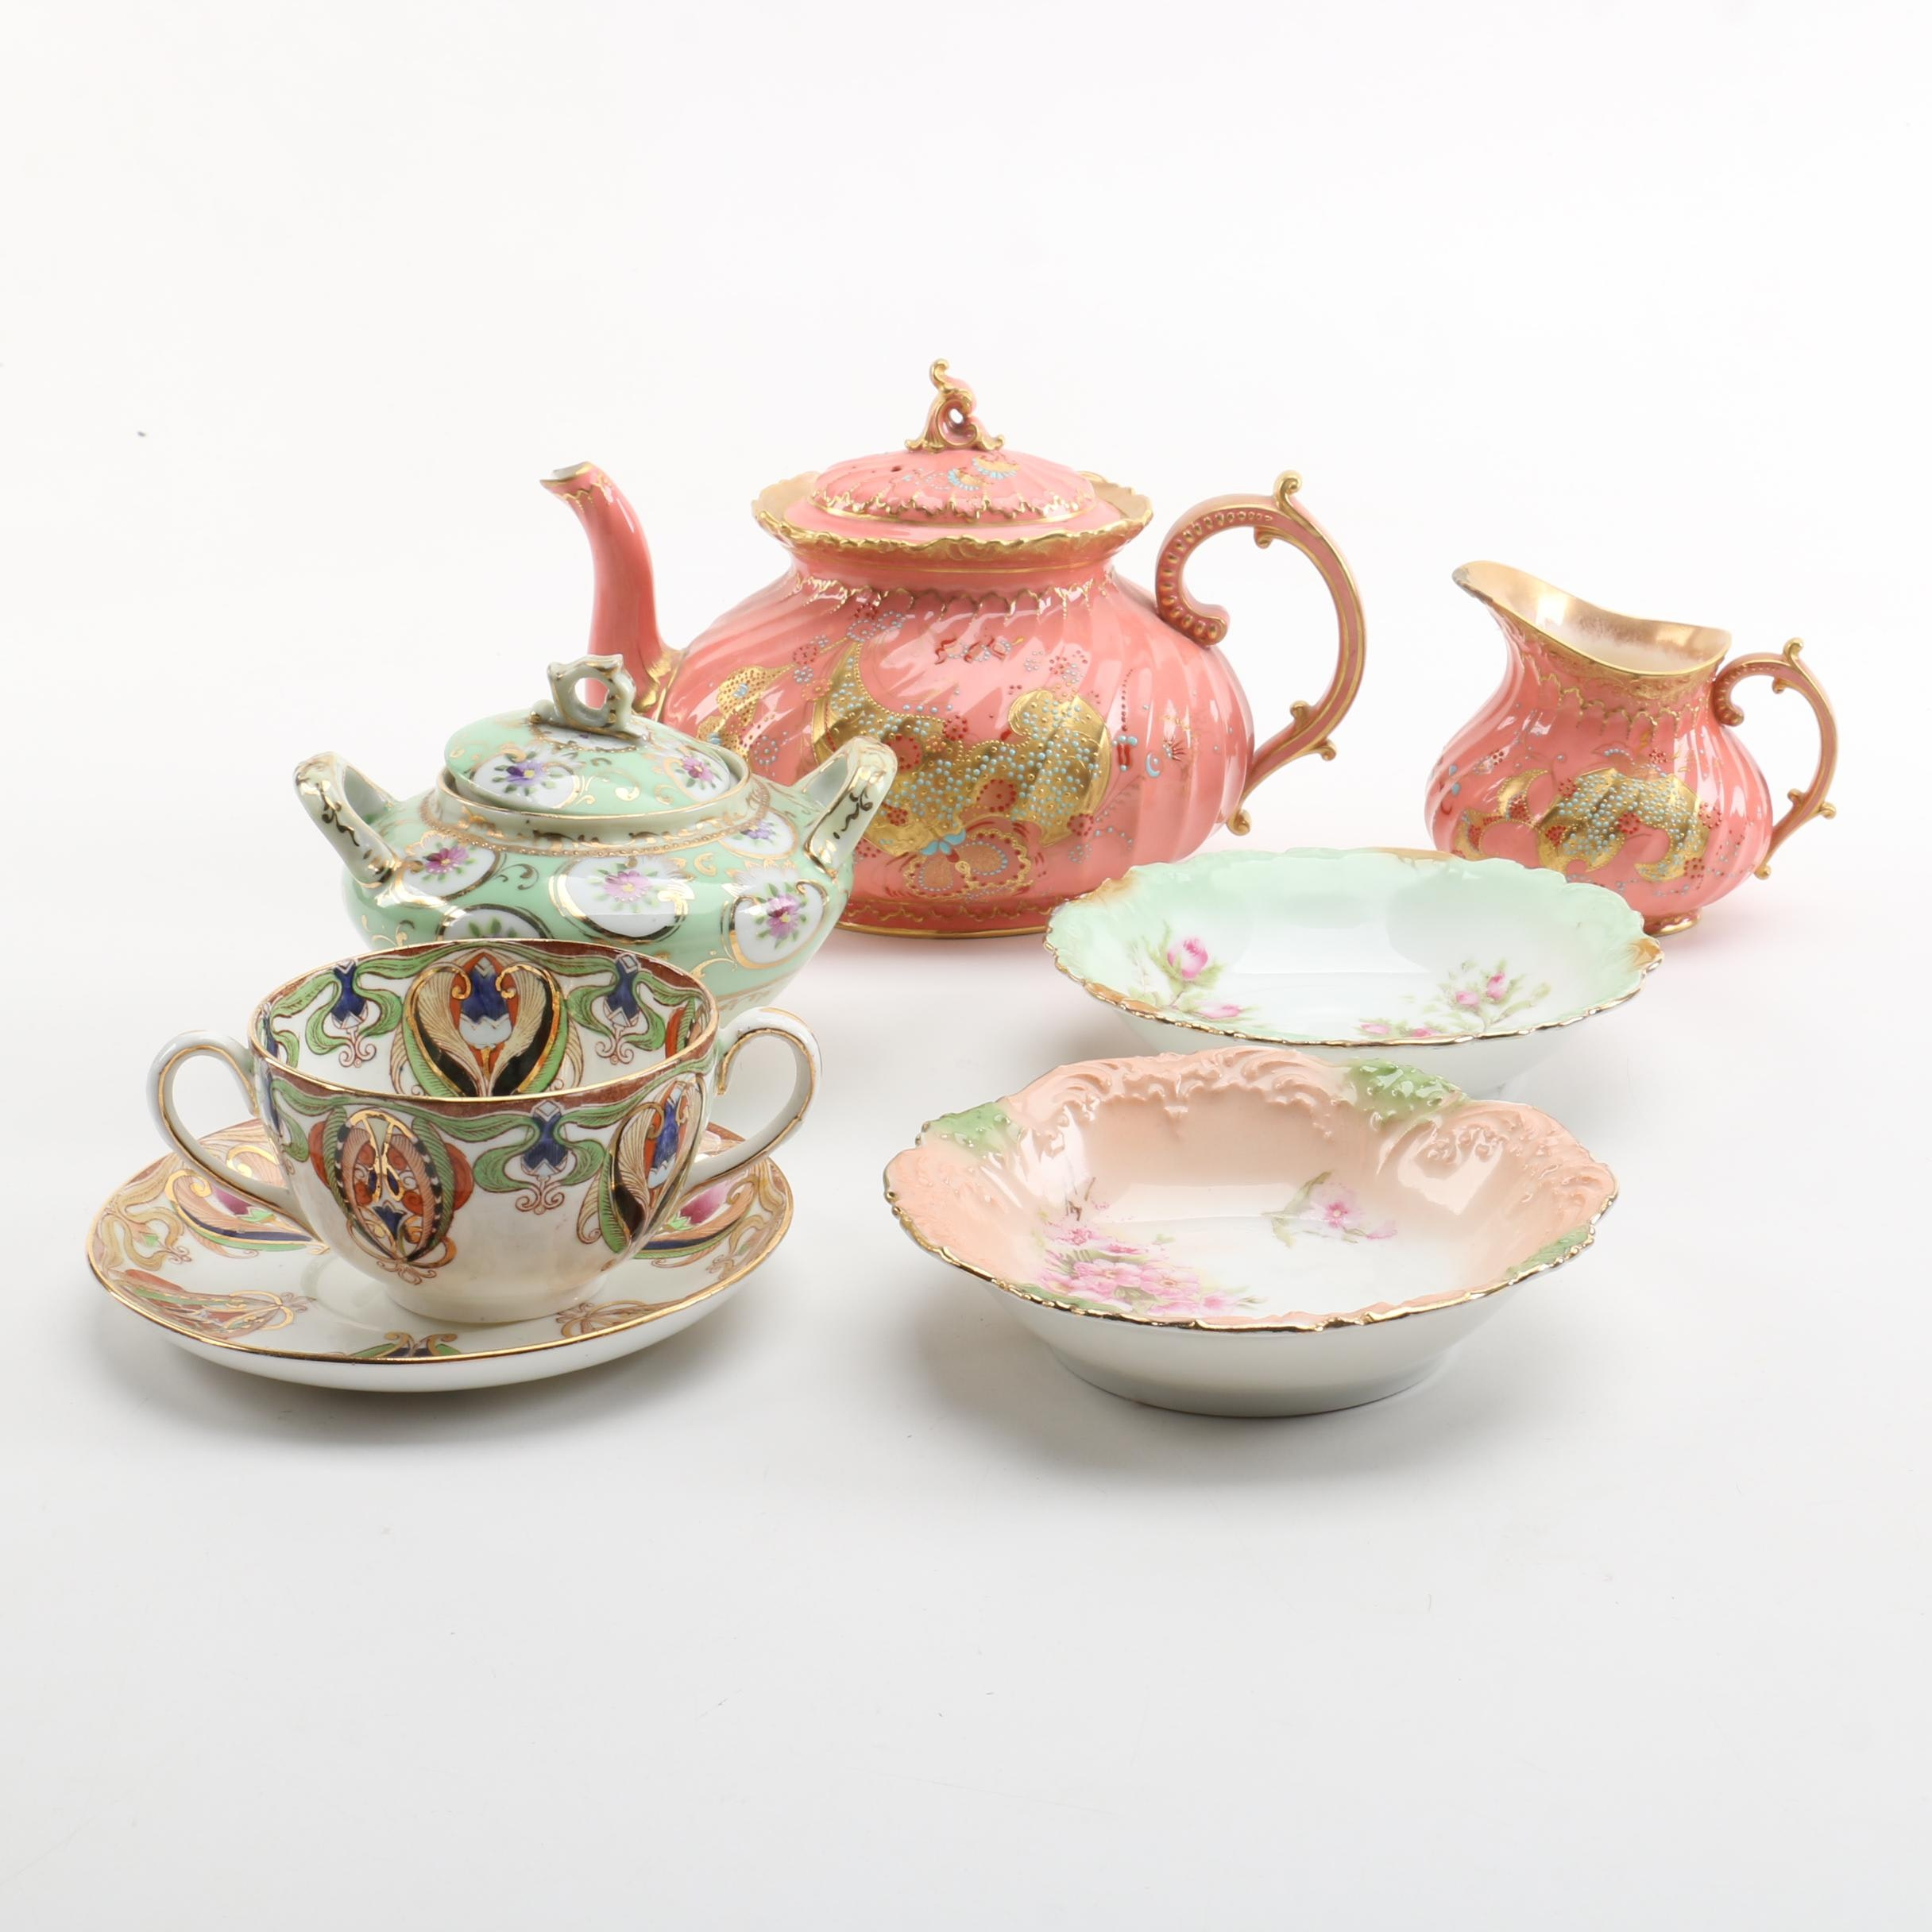 Tableware Including Antique Royal Derby Teapot and Creamer